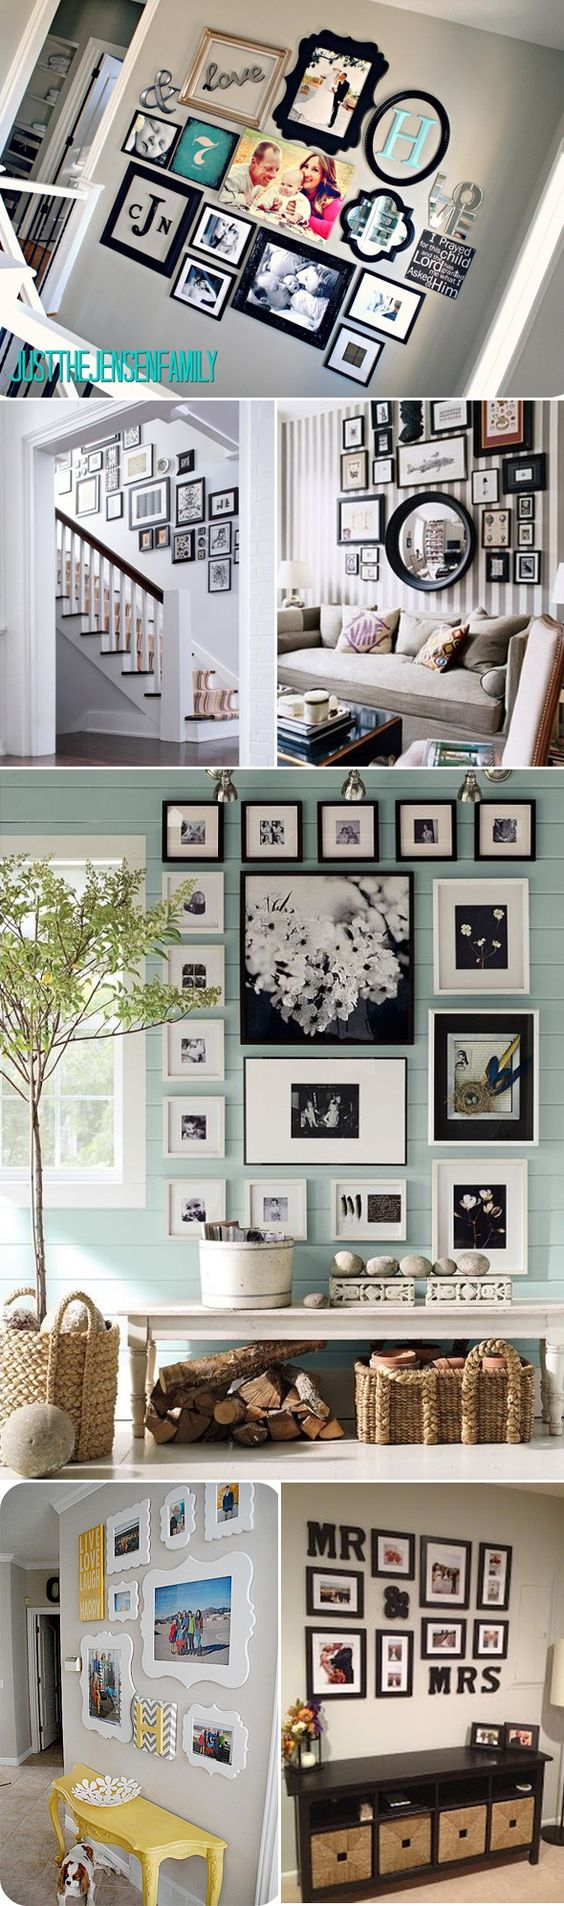 Add important numbers to collage wall